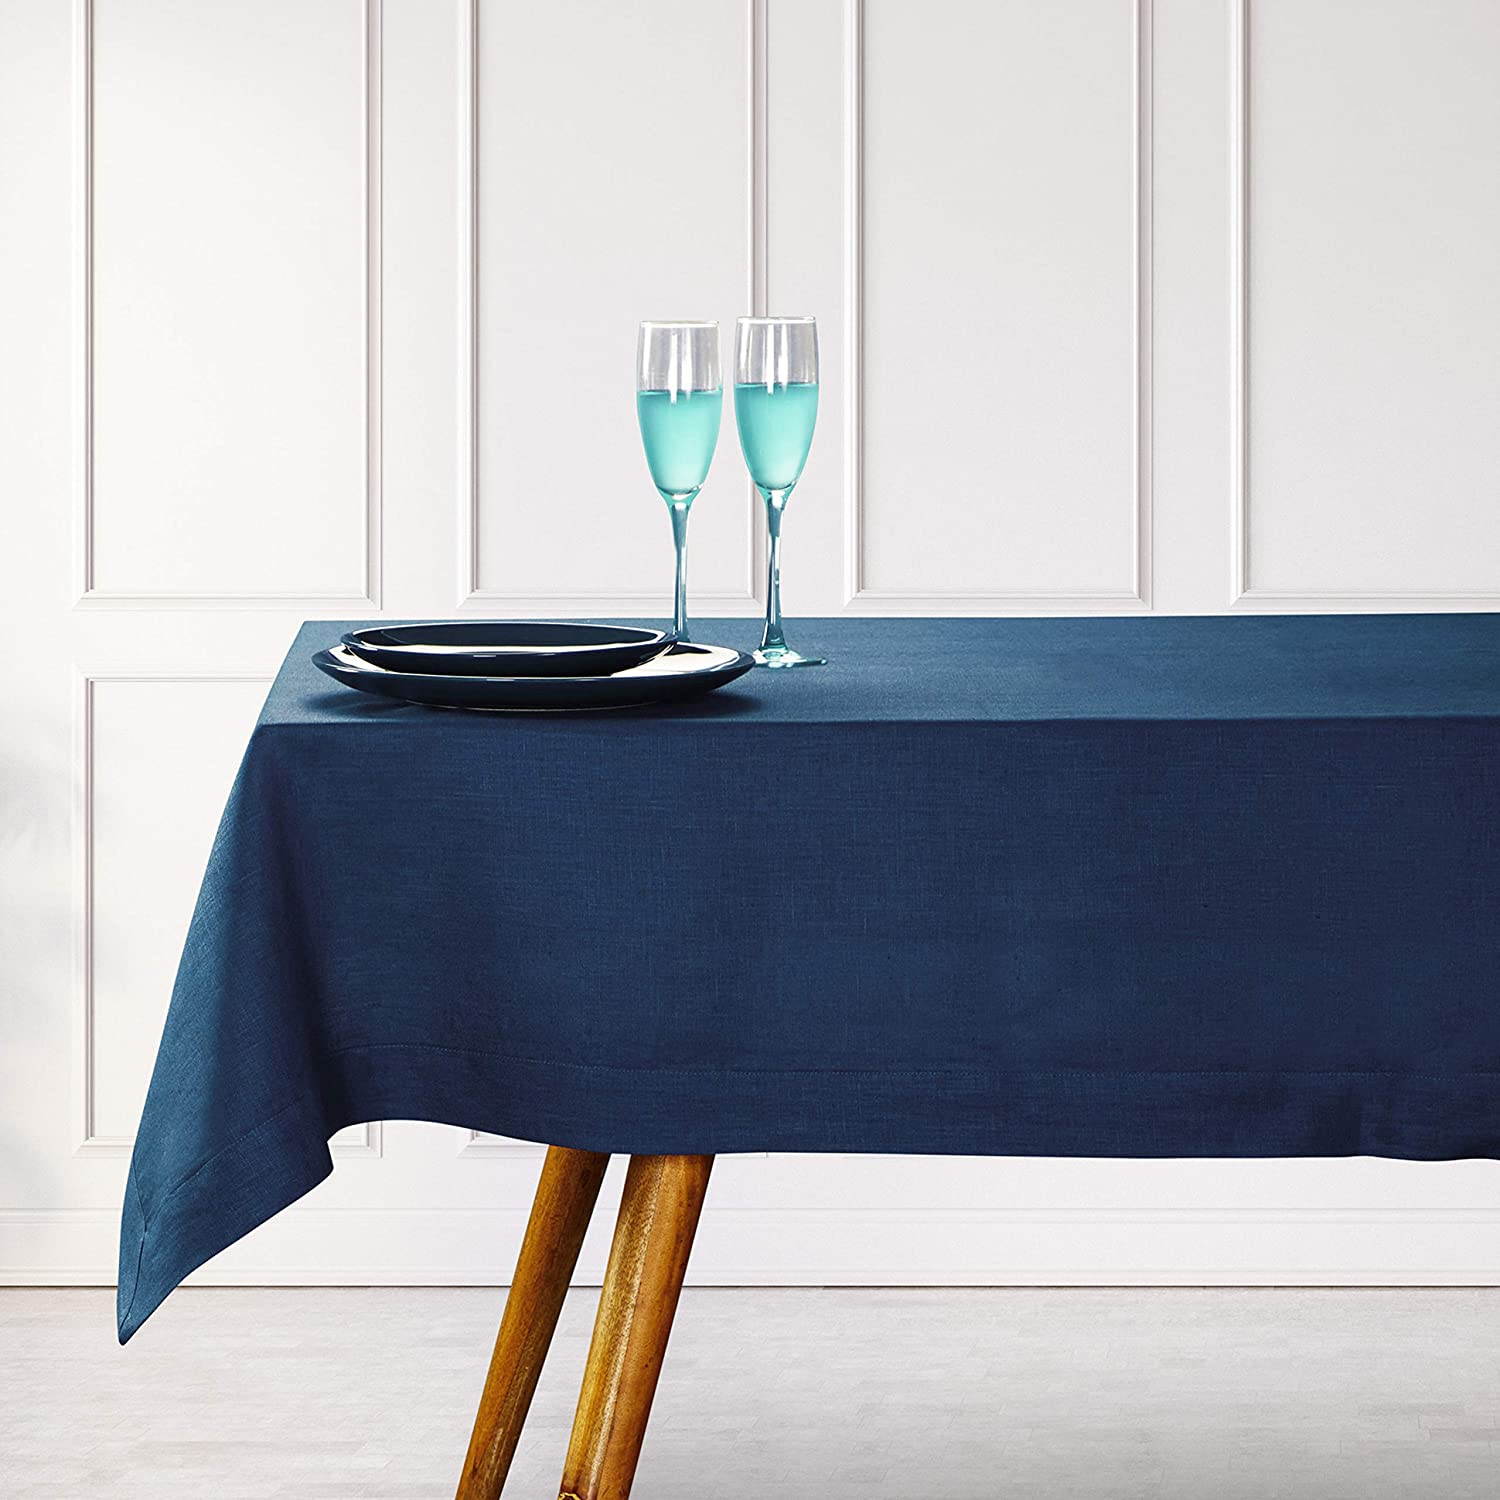 D'Moksha Homes 100% Pure Linen Rectangle Tablecloth, 60x90 inches - Handmade, Decorative Table Cover for Kitchen, Dining, Restaurant, Party, Cocktail, Daily Use - Navy Blue. European Flax